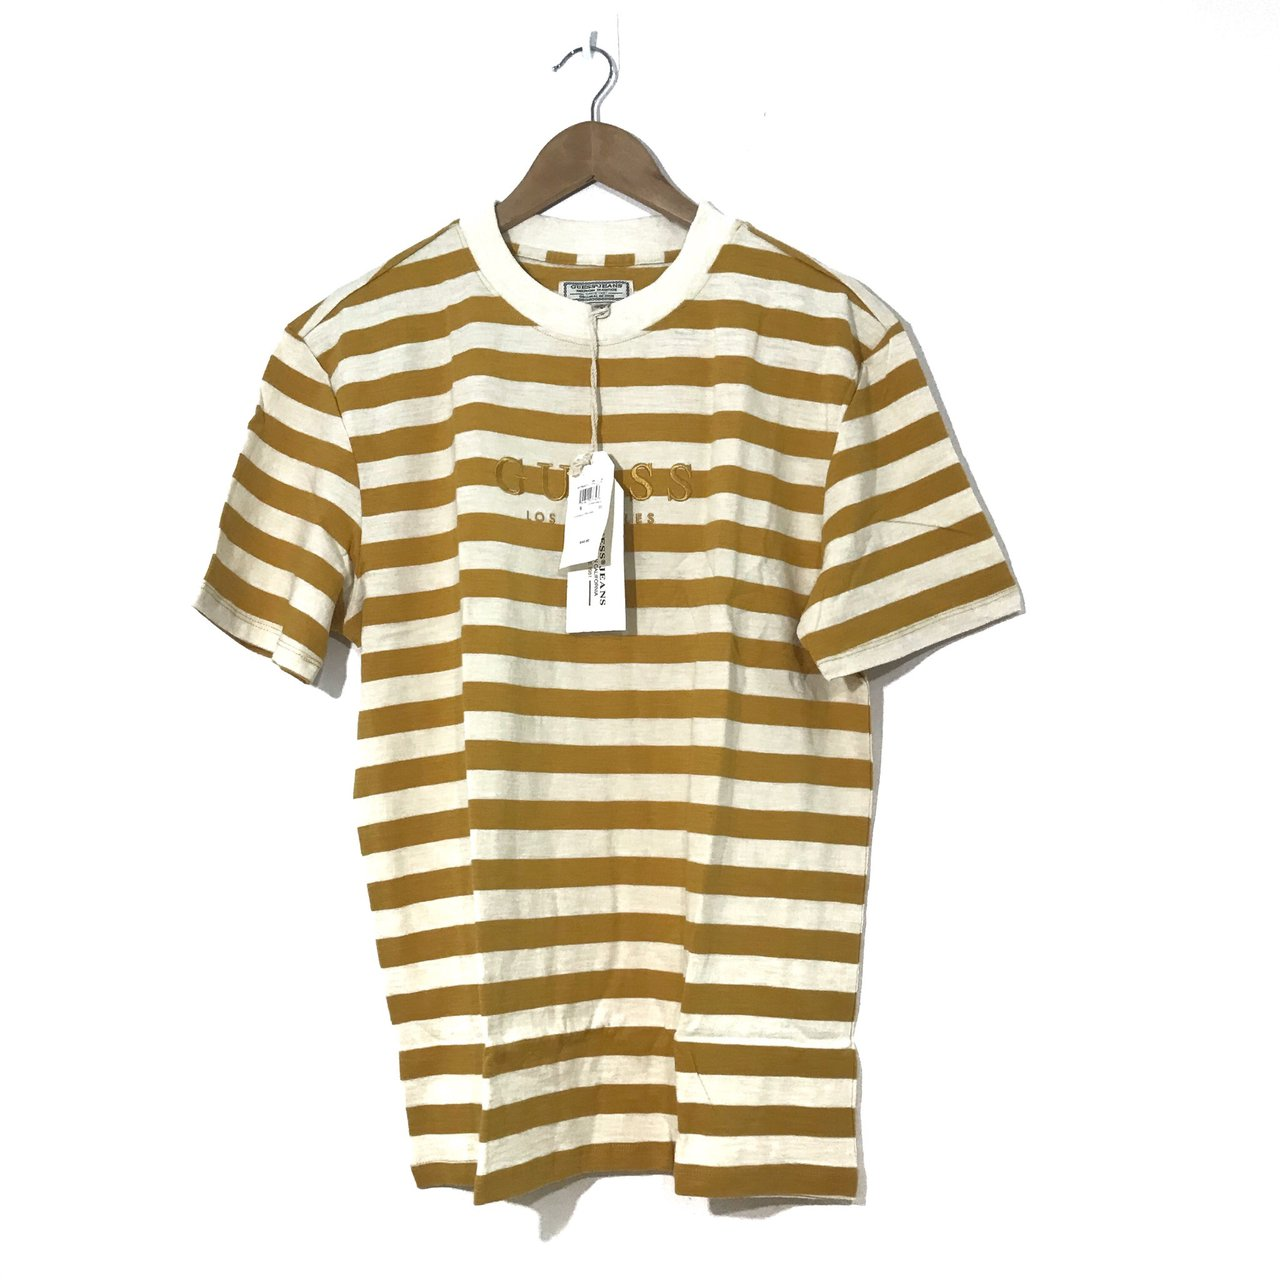 c41c3e0721 Guess Stripe Shirt Yellow White Colorway guess Los Angeles , - Depop